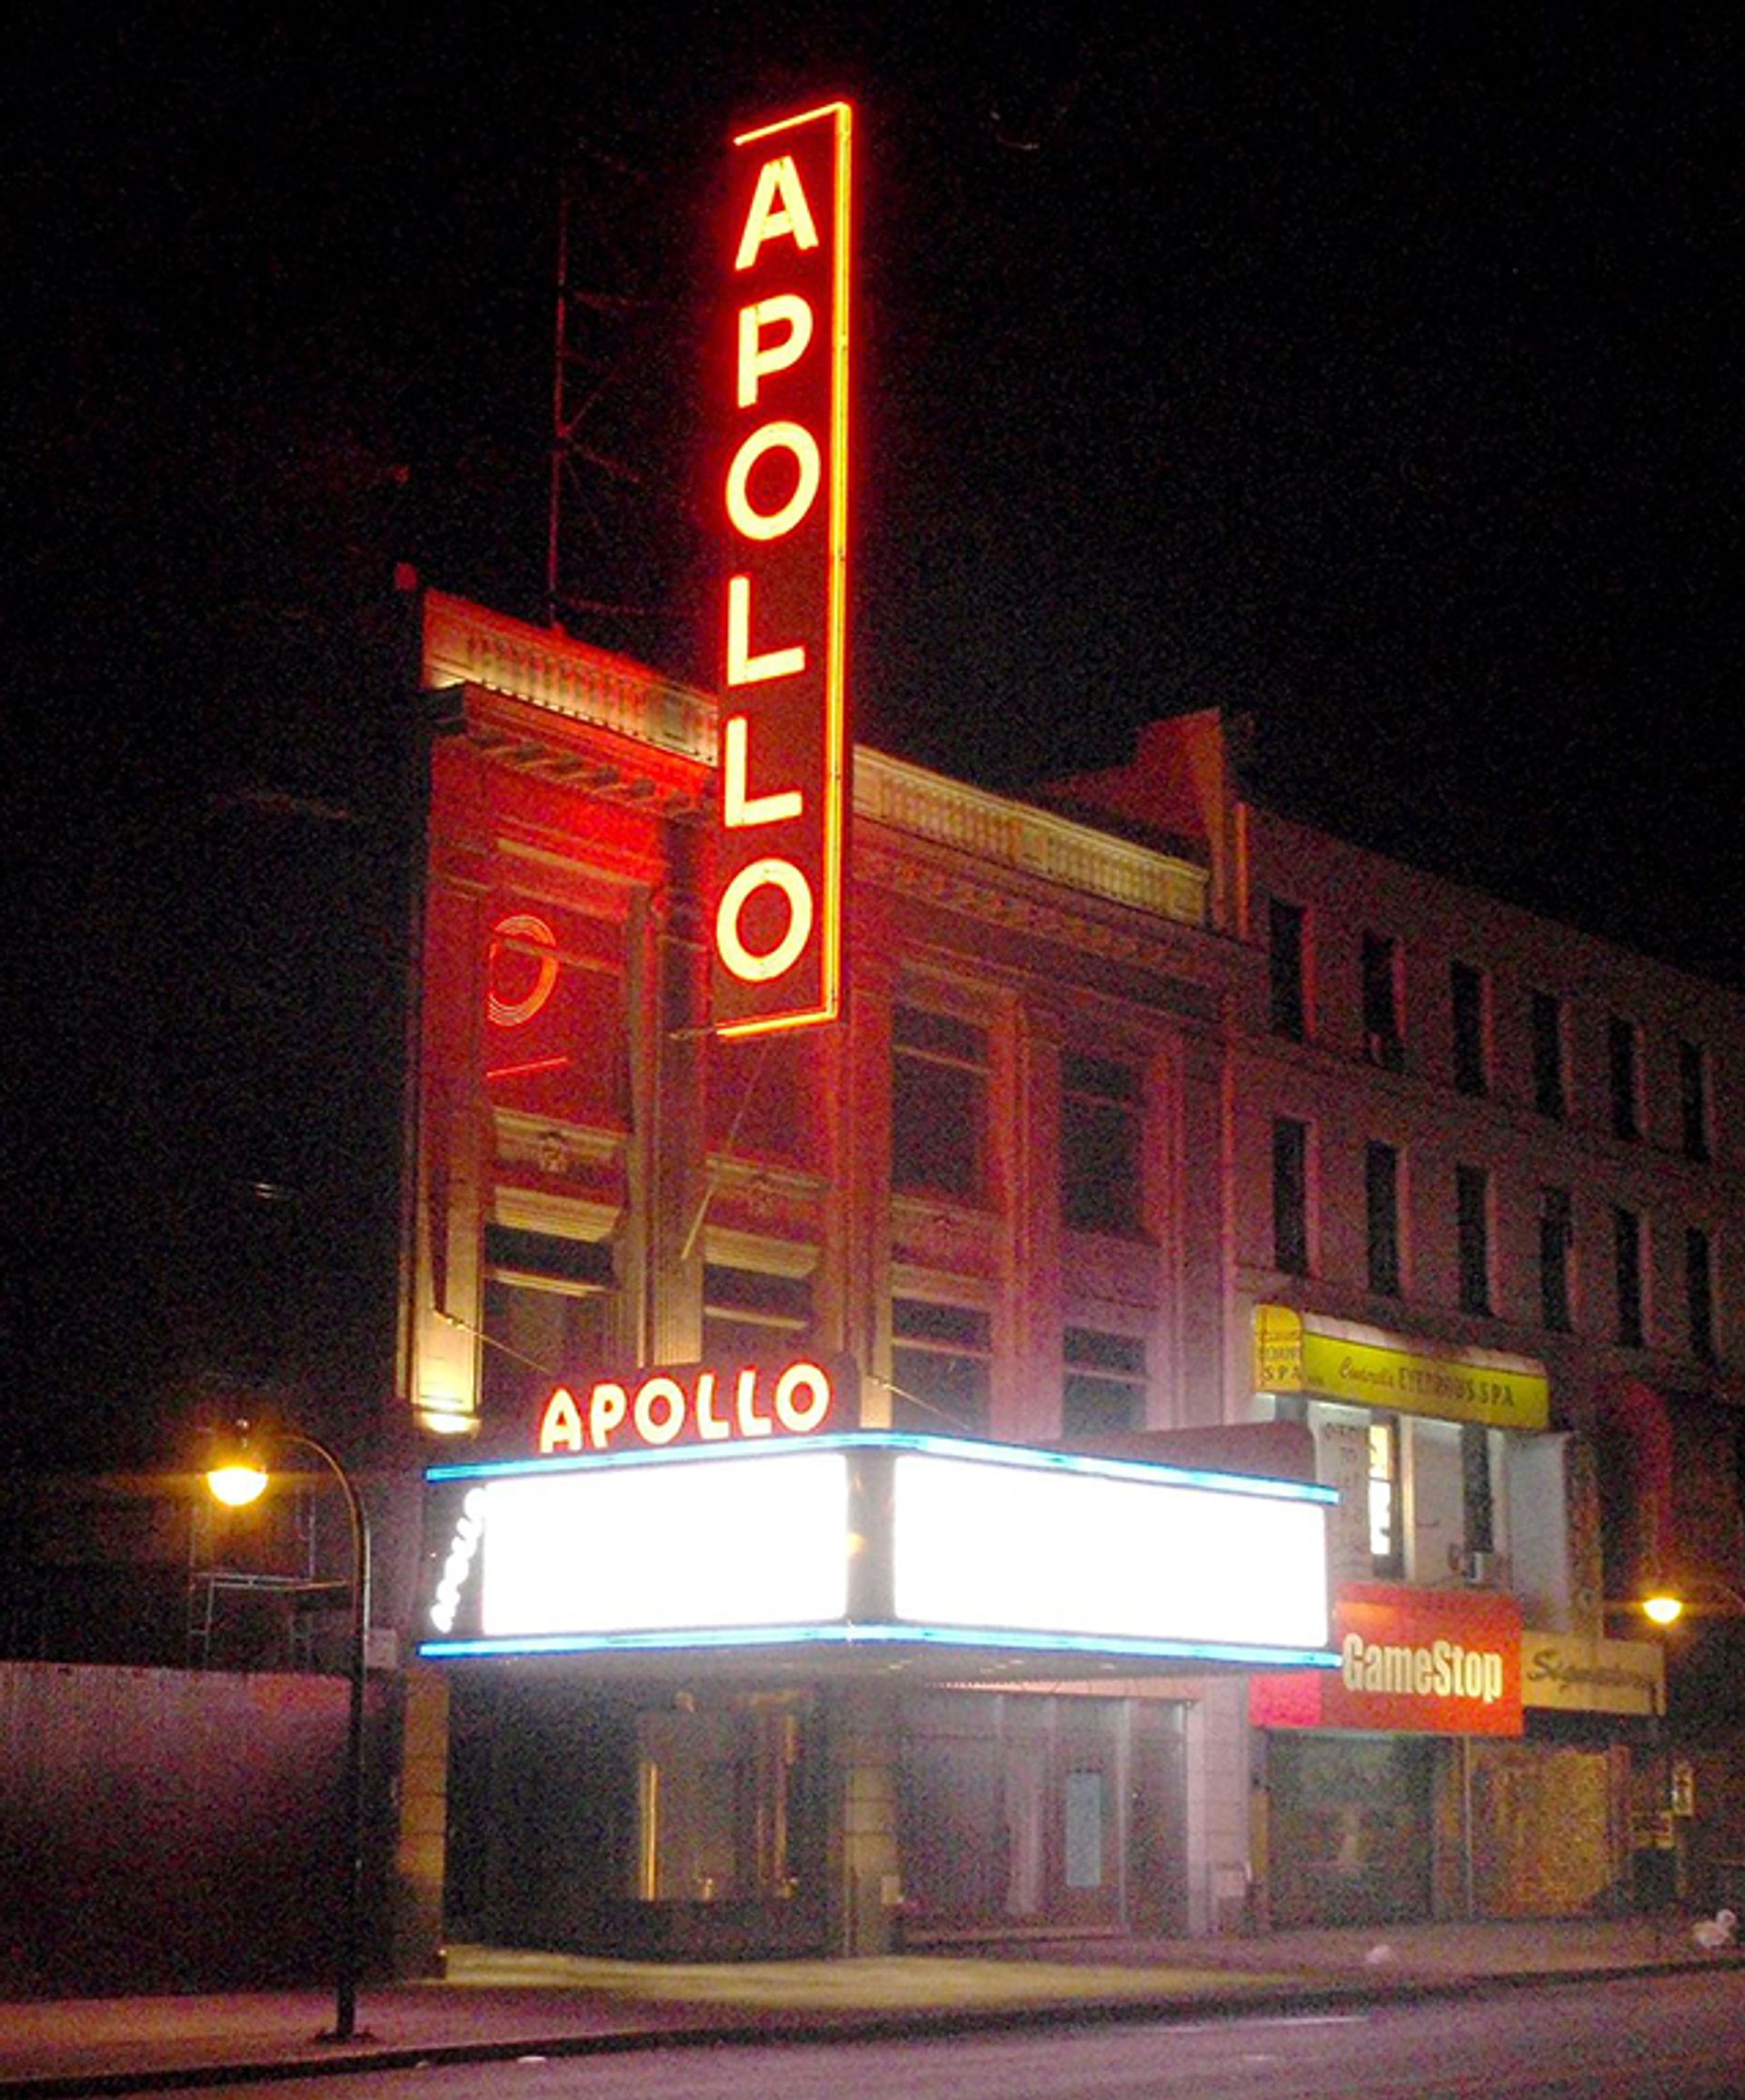 The Apollo Theater, one of the cultural organisations to benefit from a broad $156m cultural philanthropy initiative